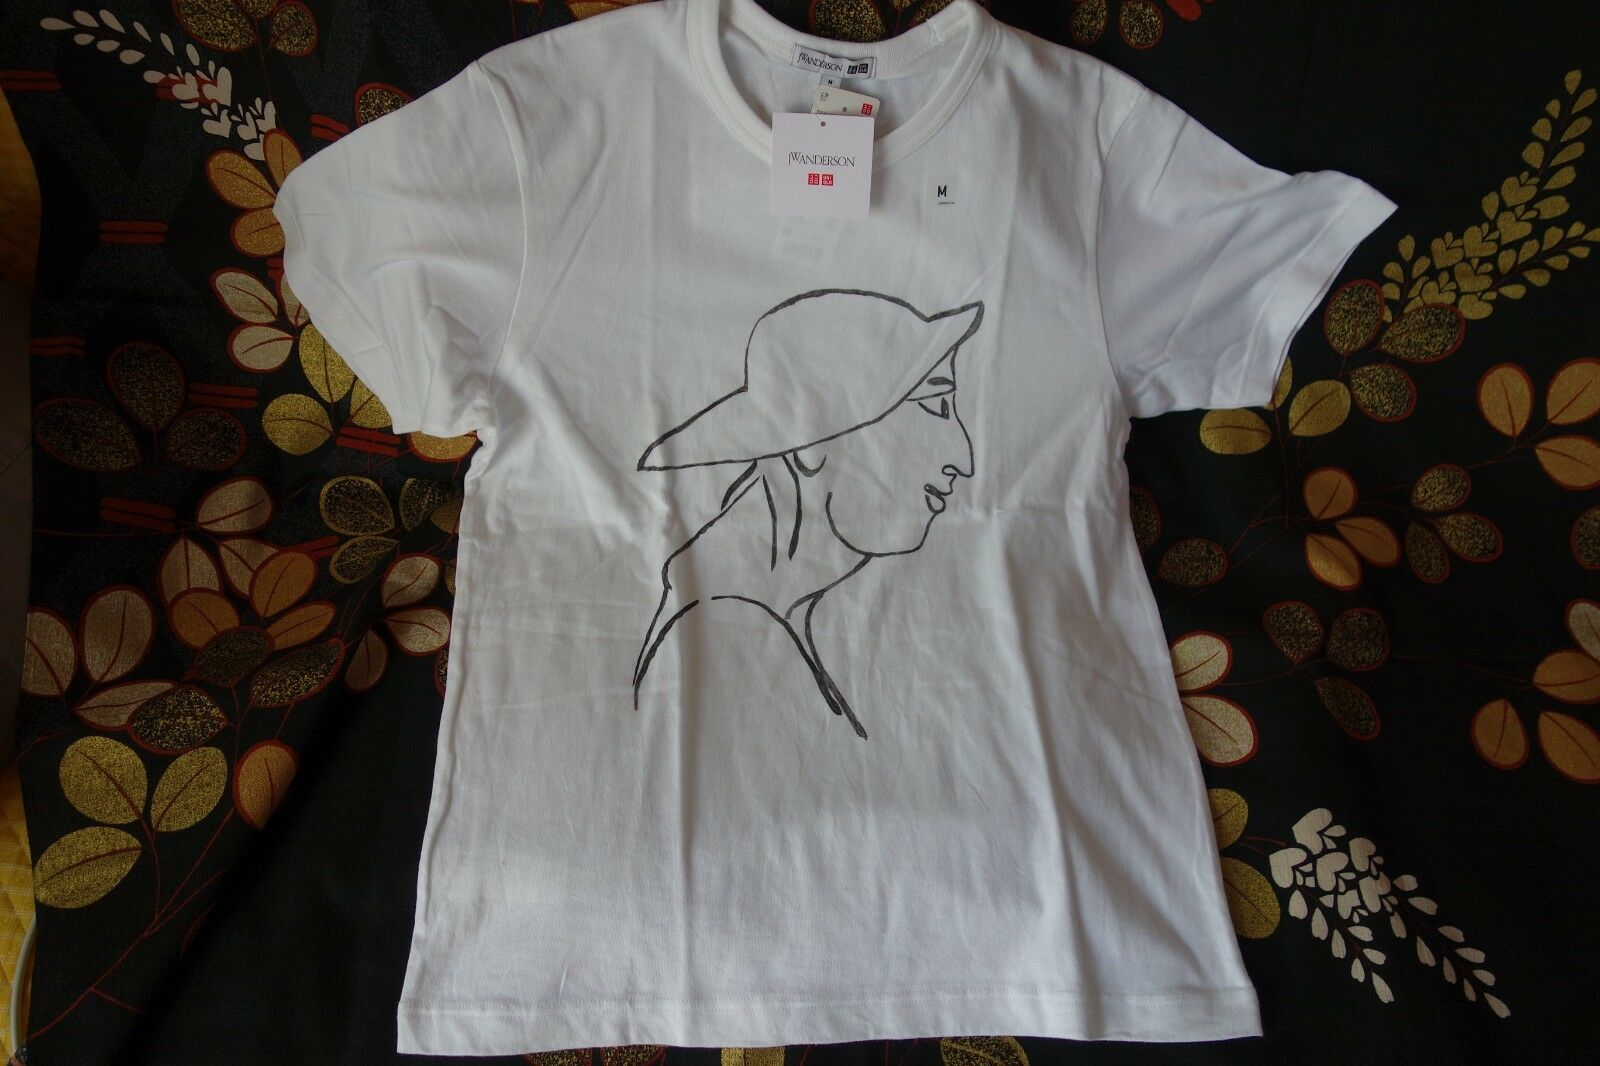 JW ANDERSON X UNIQLO Men's T-Shirt Handwriting style Very Rare Sold Out Item